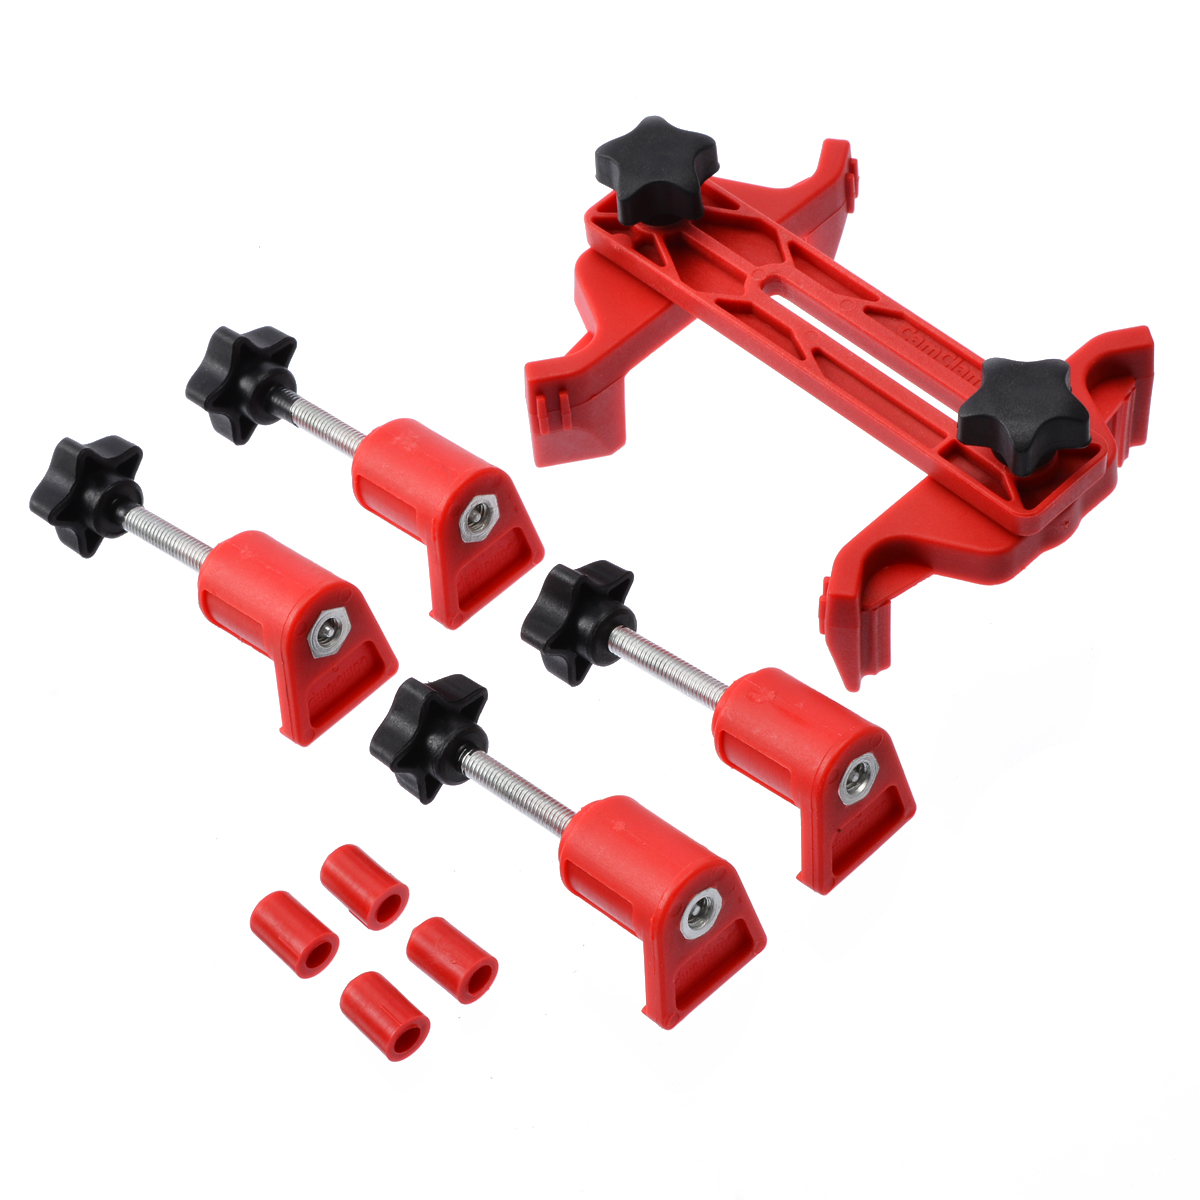 Universal 5Pcs/set Cam Camshaft Lock Holder Car Engine Cam Timing Locking Tool Set Automotive Timing Belt Disassembly Kit